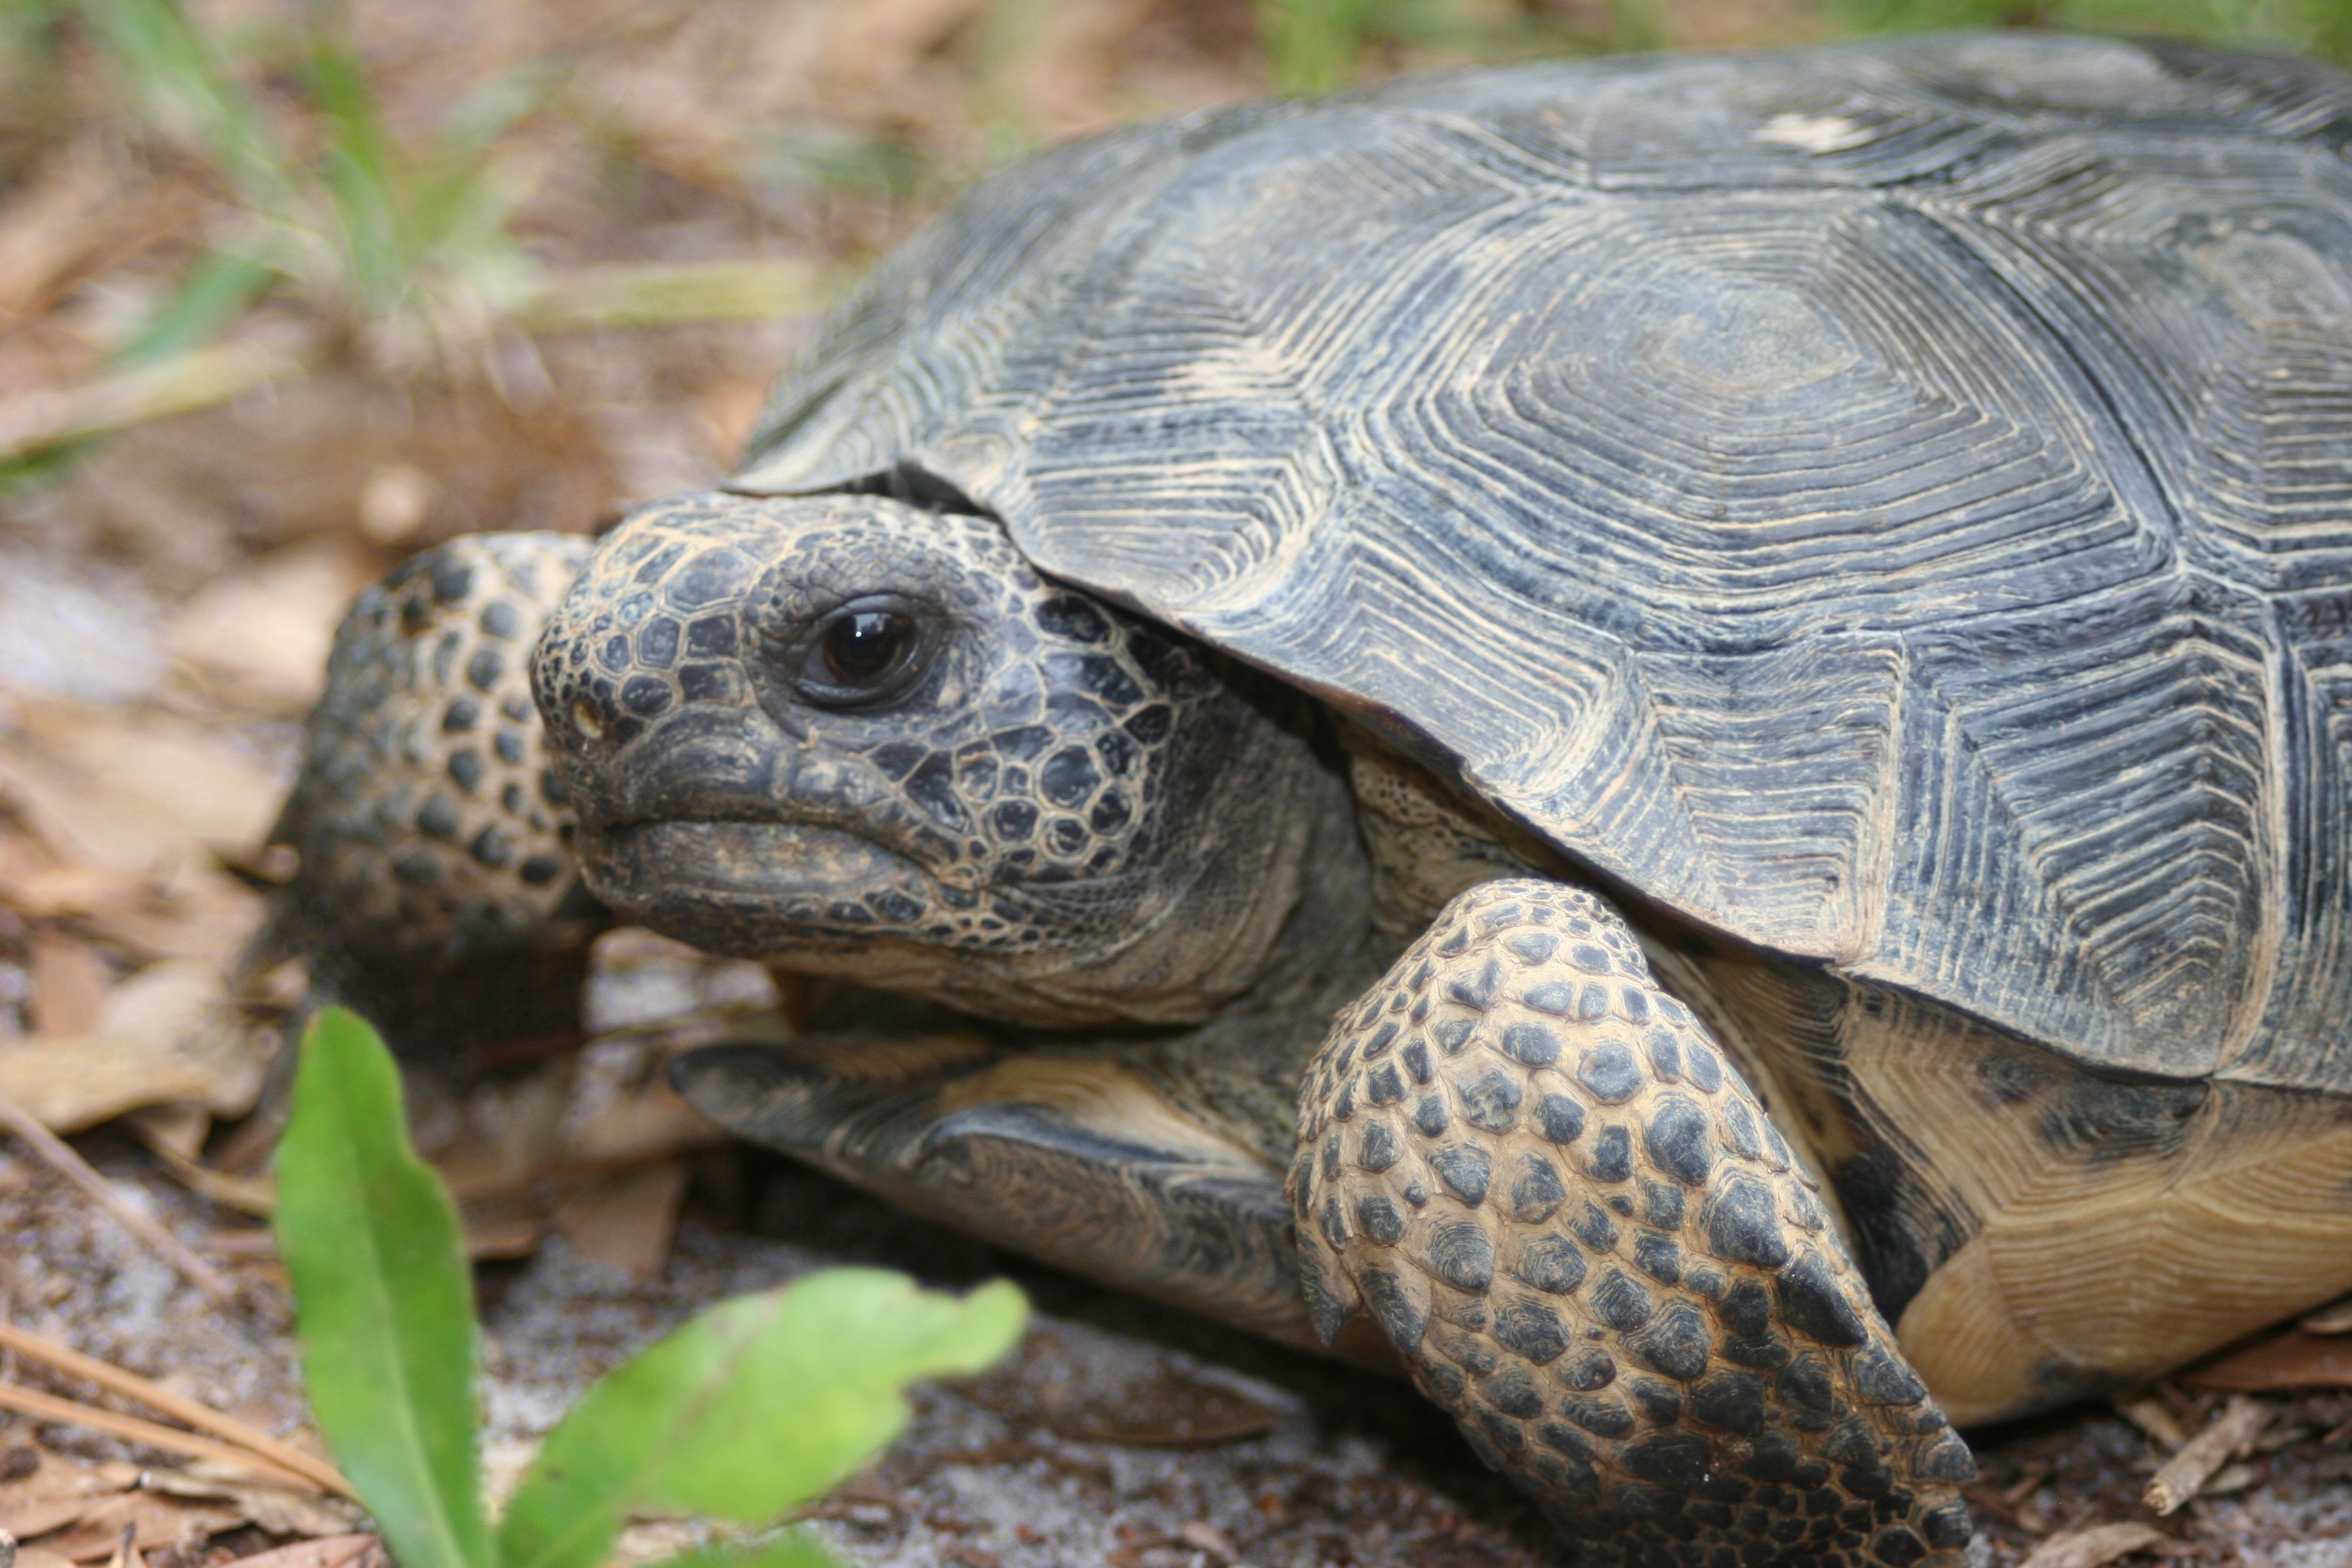 The gopher tortoise is the keystone species of the Southeast's longleaf pine forests. More than 300